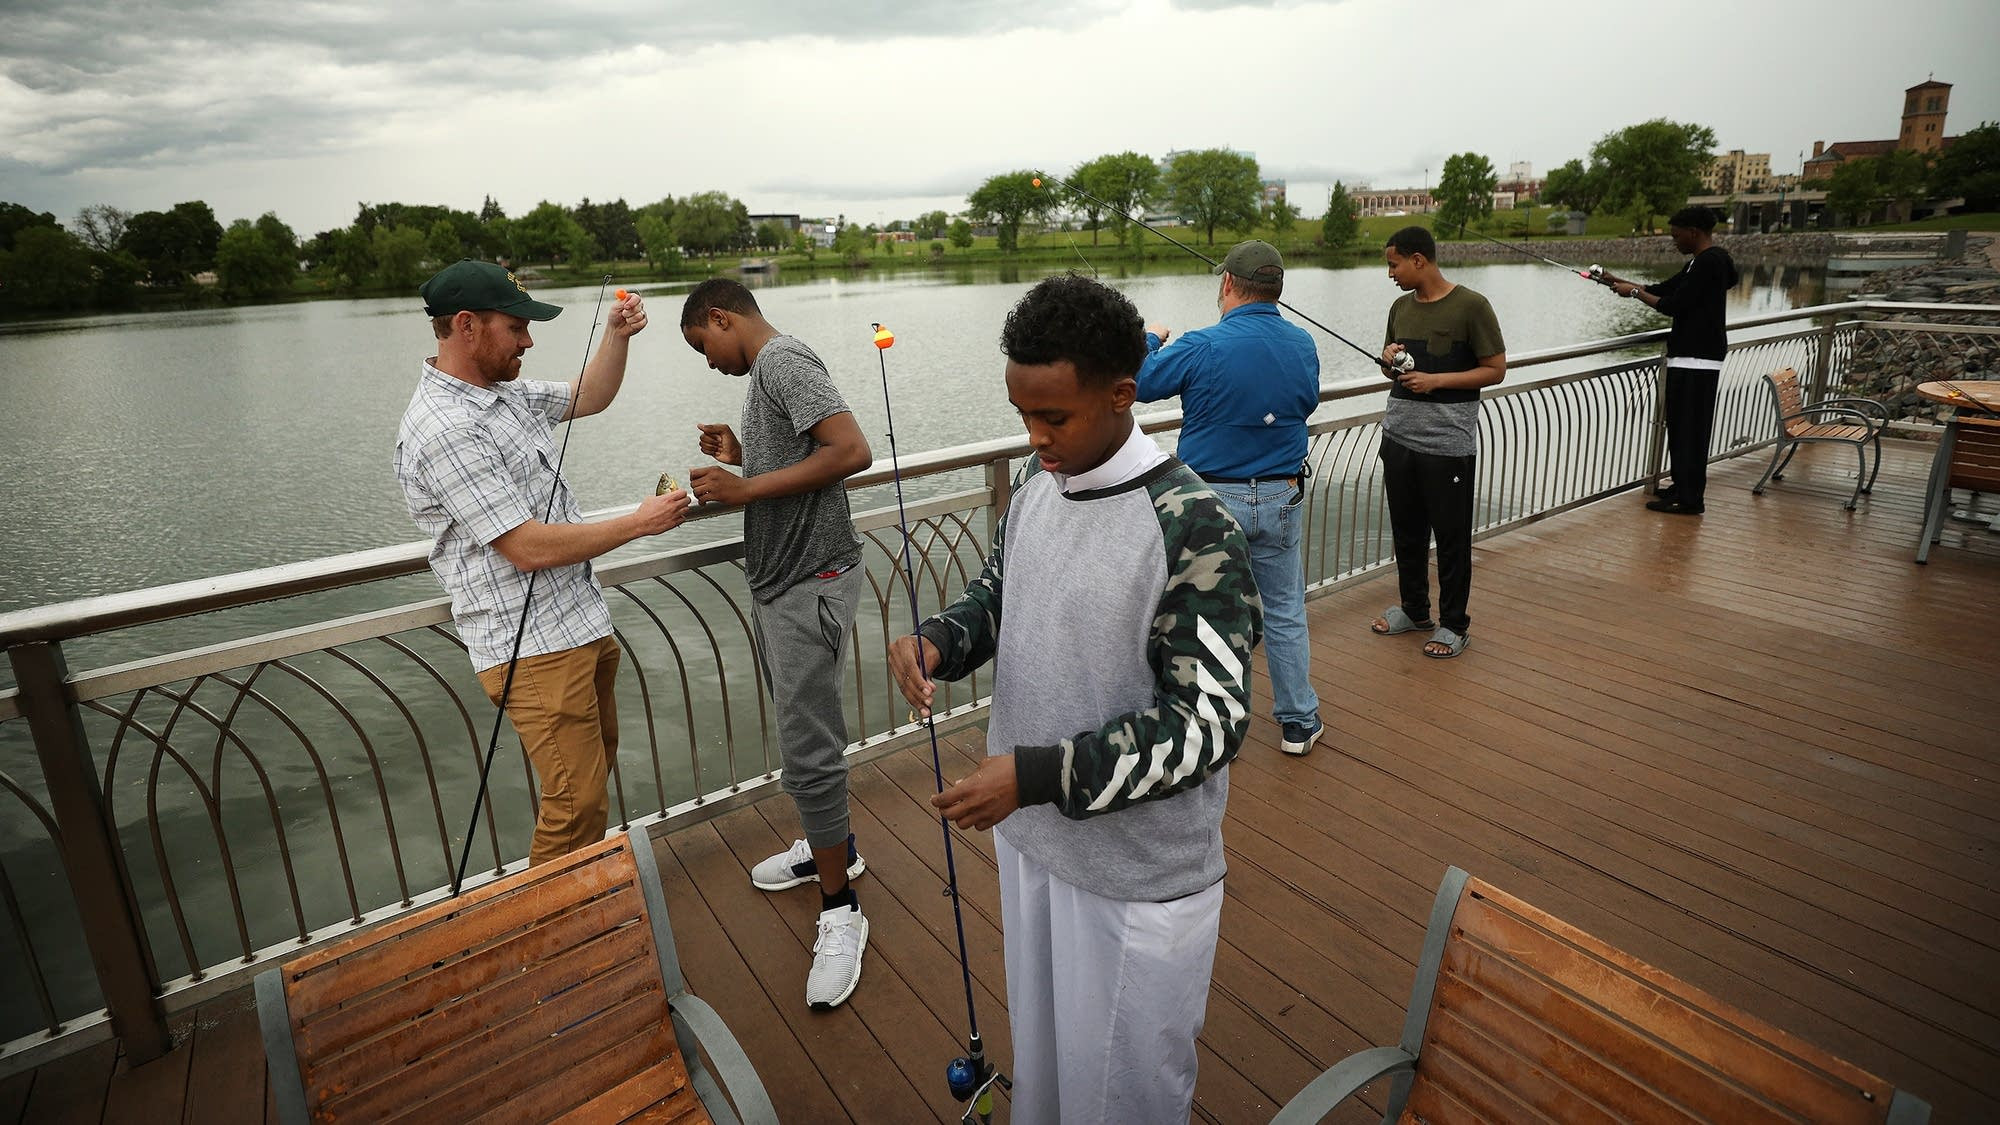 Members of the Somali community learn to bait a hook and cast a line during an event to celebrate Eid. <br>Paul Middlestaedt for MPR News